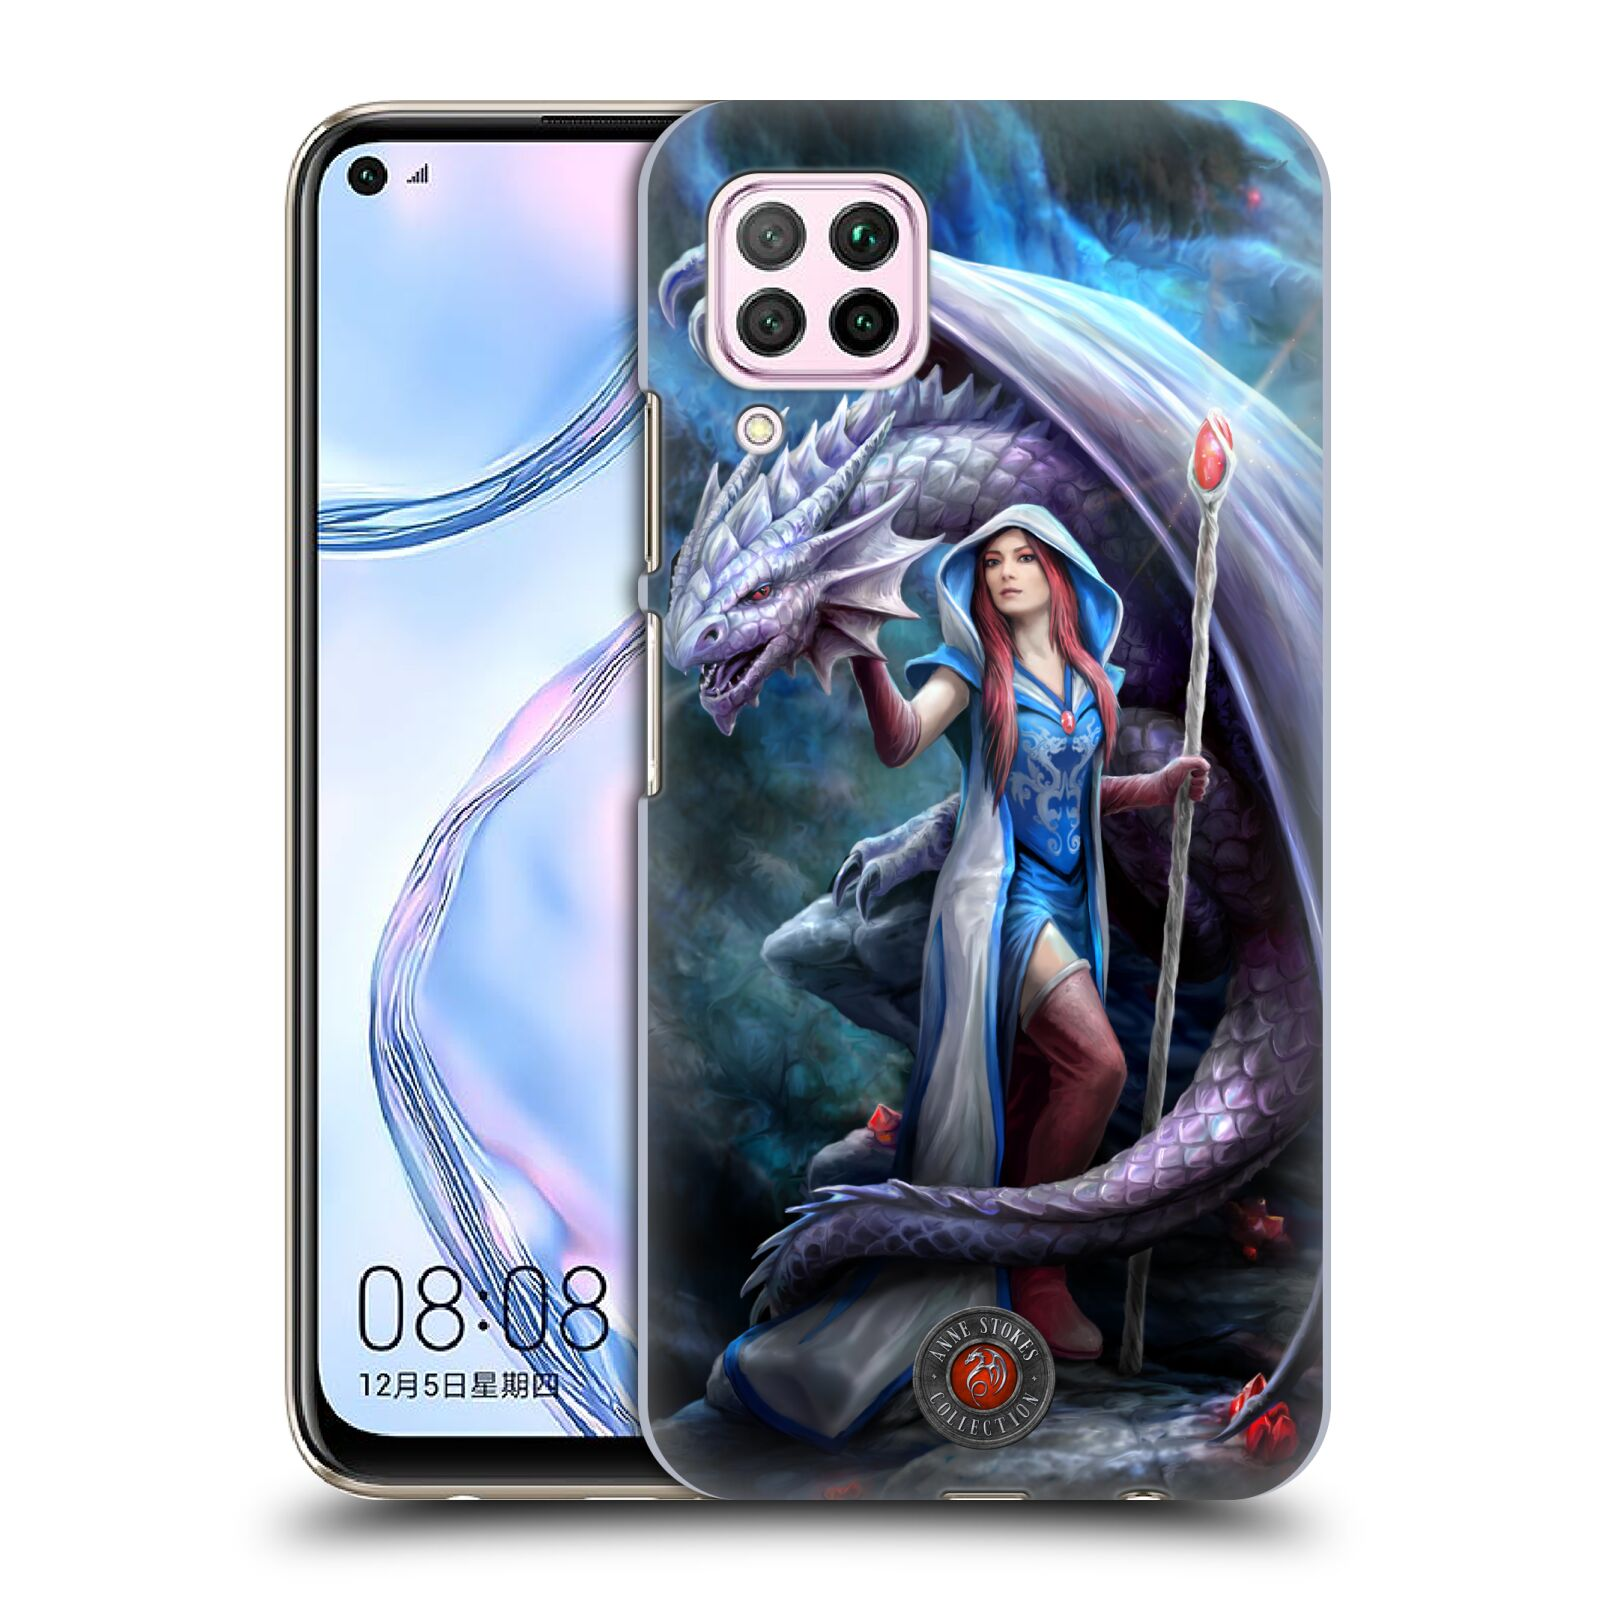 Official Anne Stokes Dragon Friendship 2 Mage Back Case for Huawei Nova 6 SE